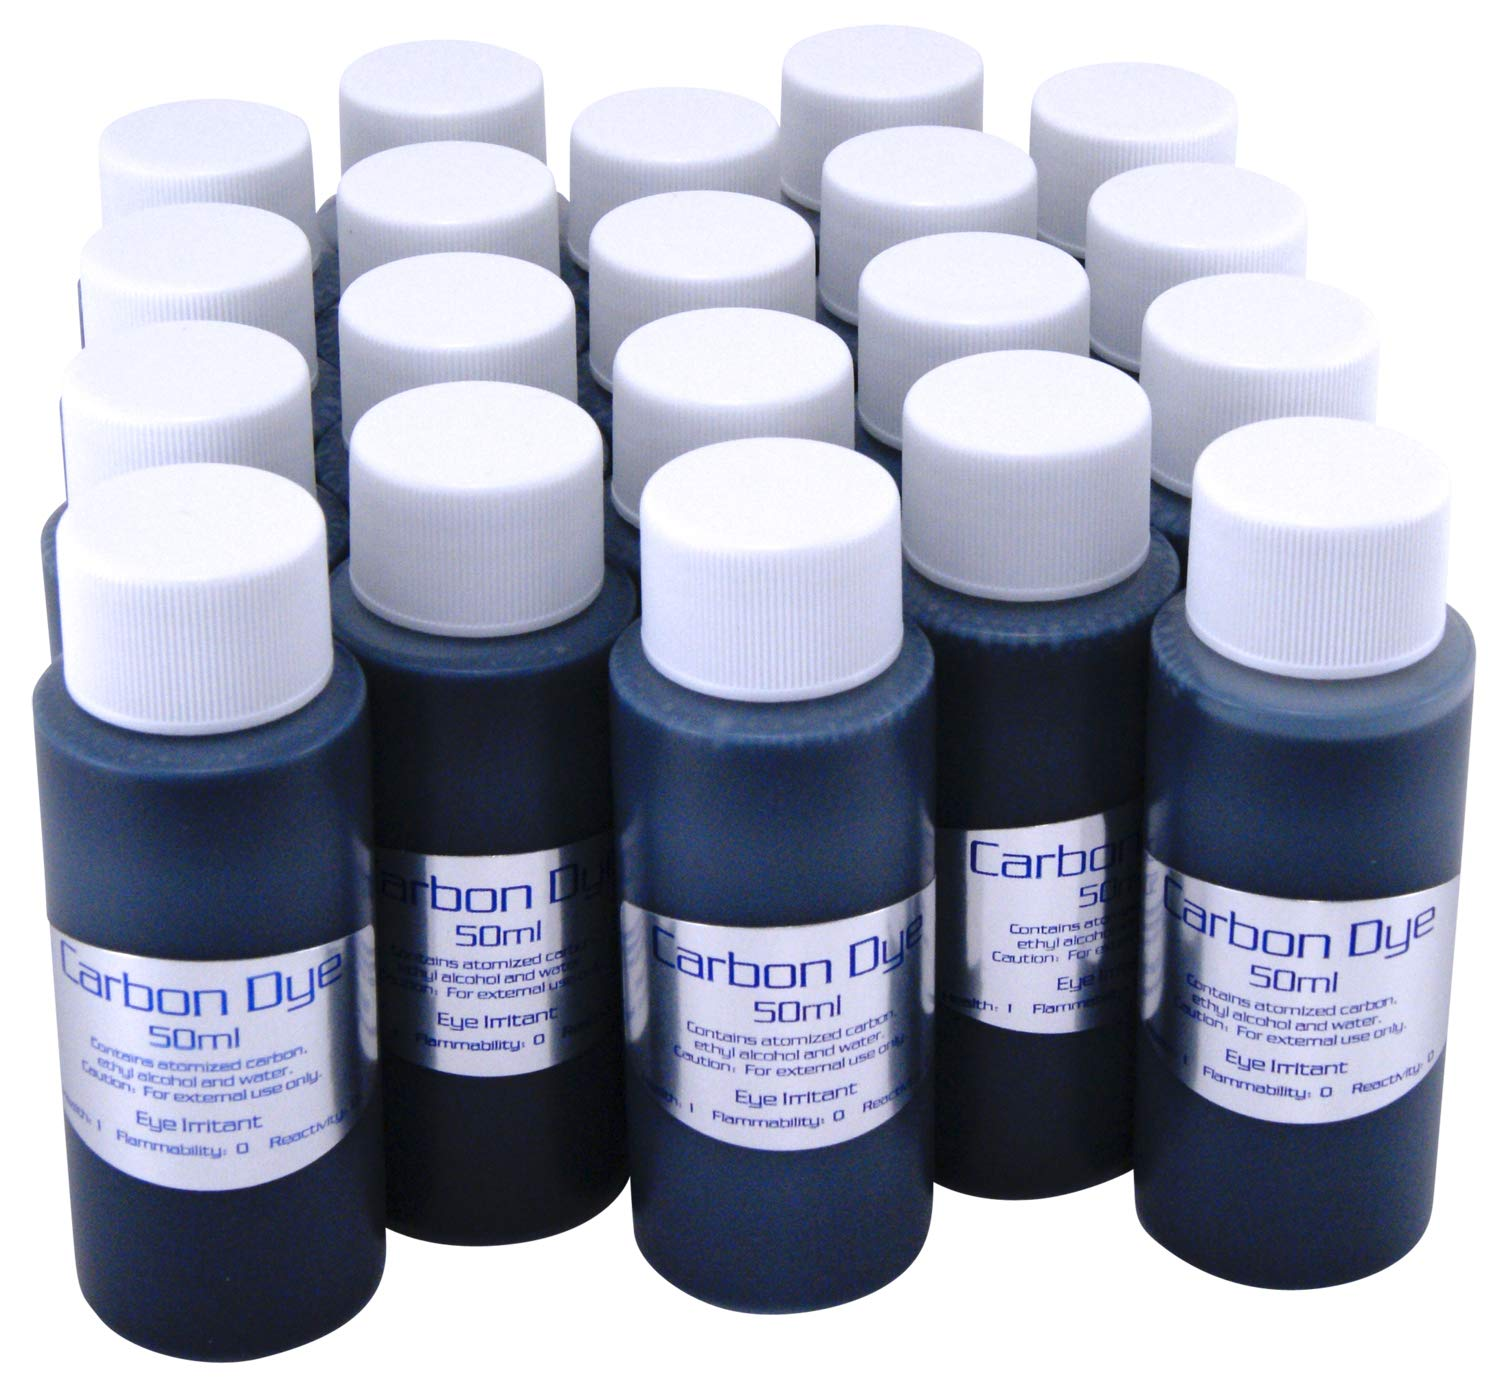 Carbon Dye 1000ml for Laser and IPL Permaent Hair Removal Machines, Systems, Devices